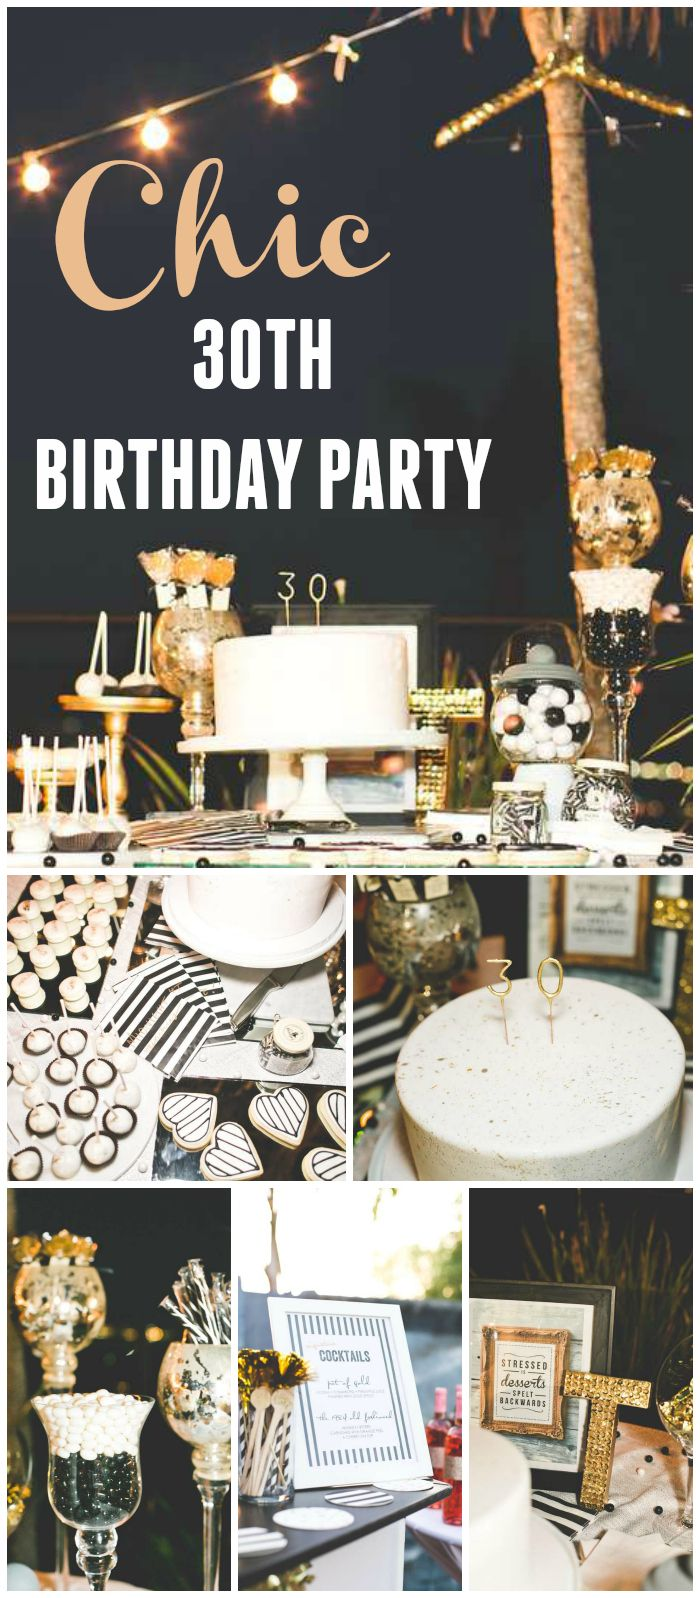 A Th Birthday Cocktail Event Decorated In Black White Stripes With Chic Gold Accents